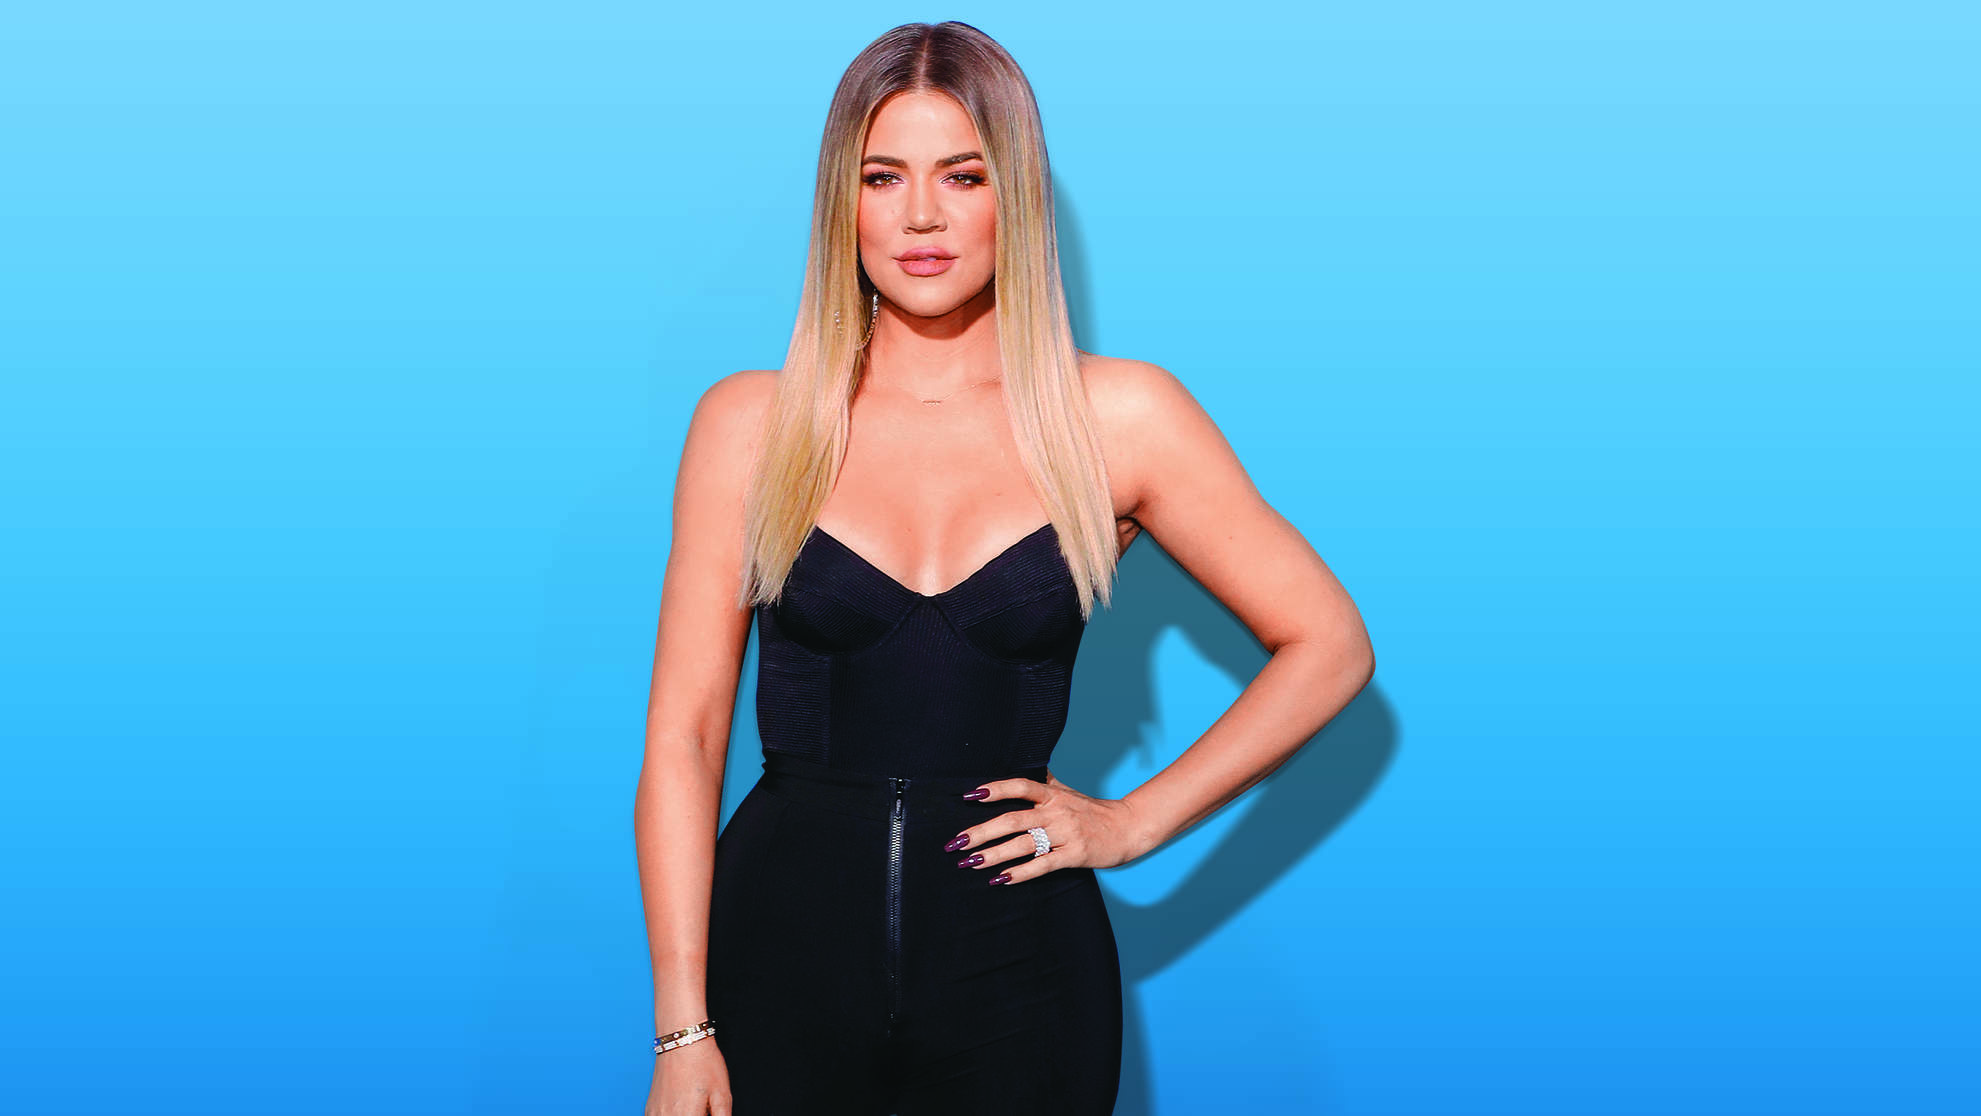 Khloe Kardashian Is Pregnant! Revealed Days After Kylie Jenner's Big Baby News